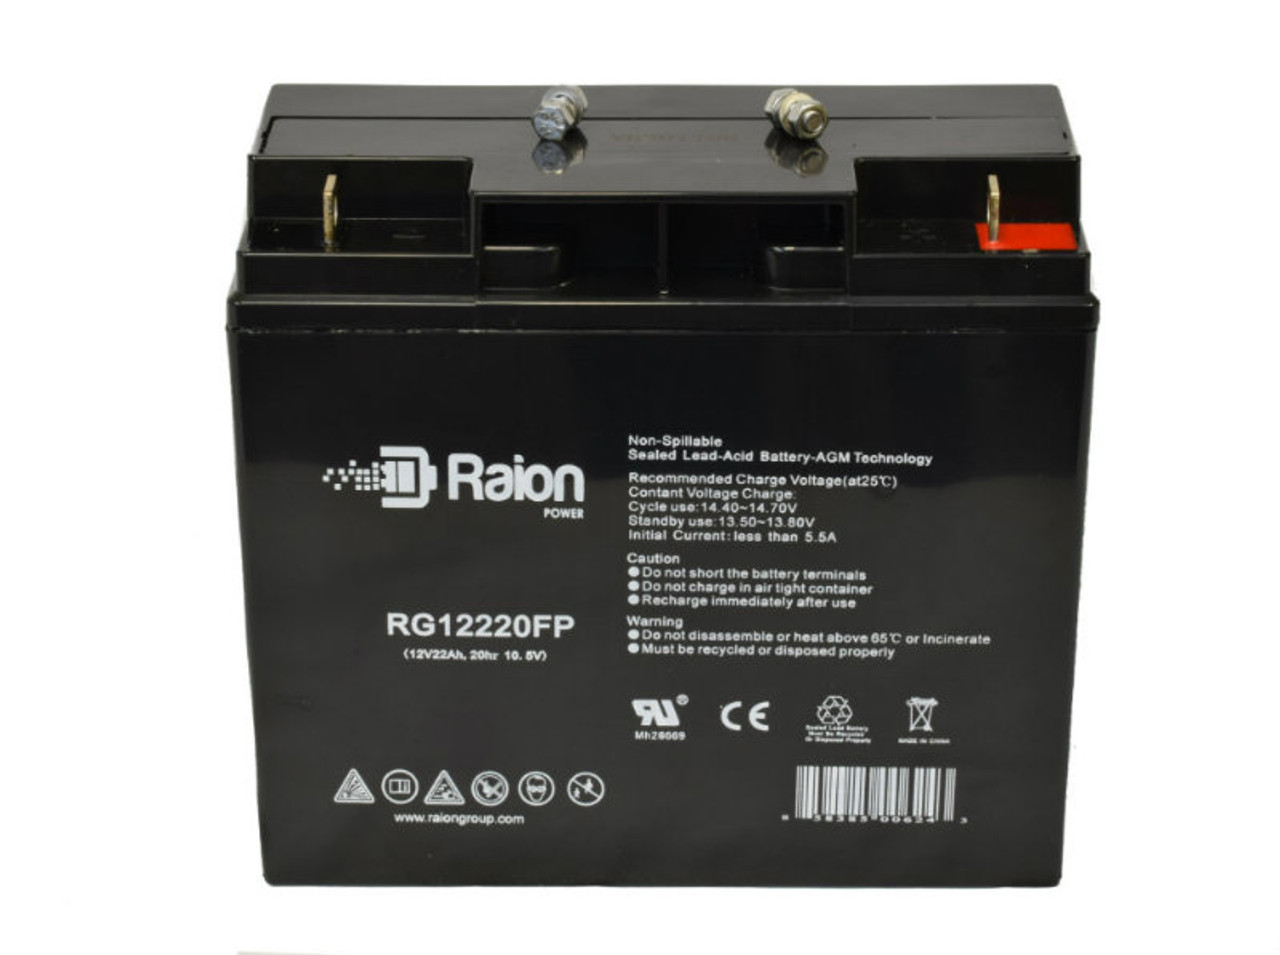 RG12220FP Sealed Lead Acid Battery Pack For IMC Heartway Nomad PT-3 Mobility Scooter